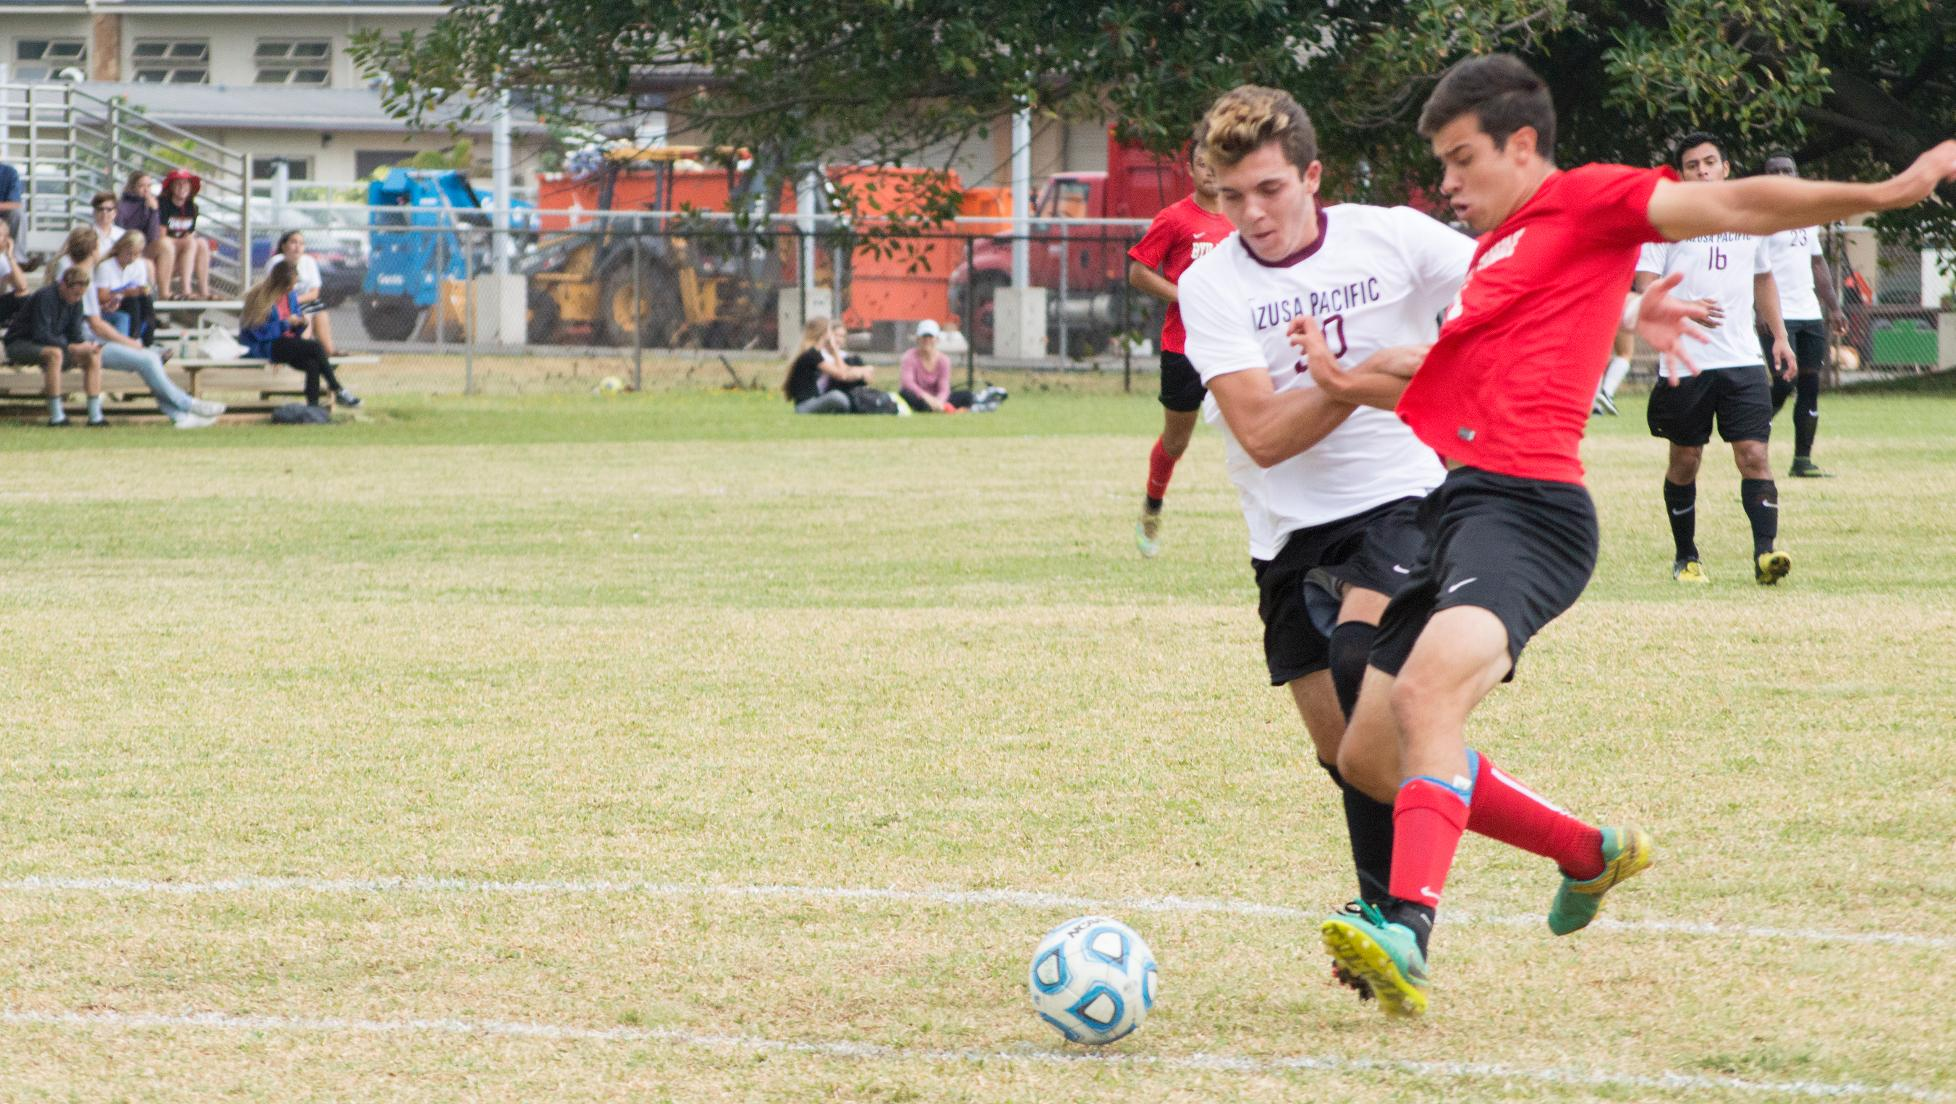 Seasiders draw with Cougars